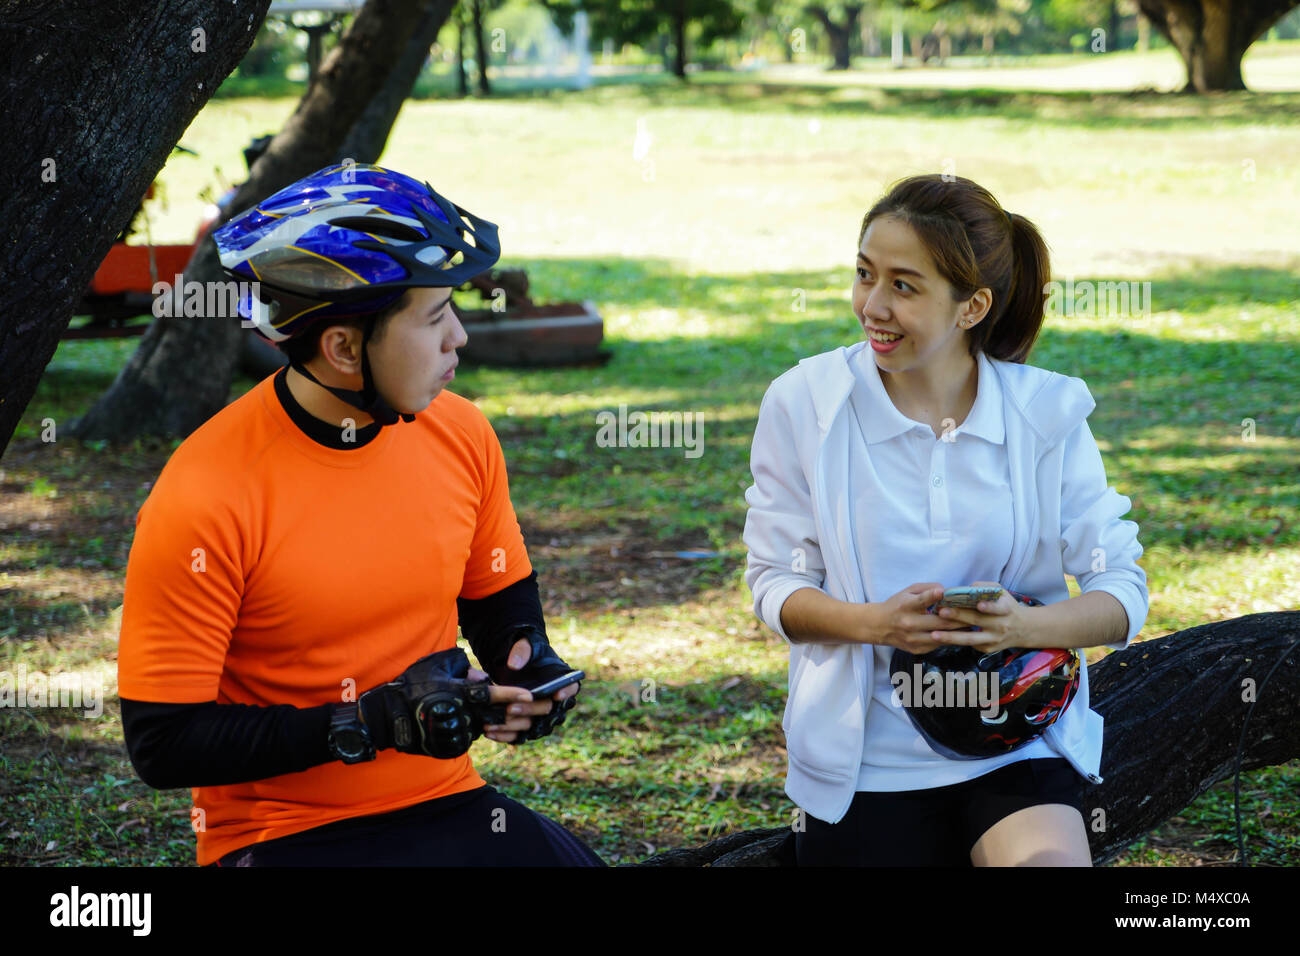 Man is socialising by having a chat with female cyclist in a park. - Stock Image